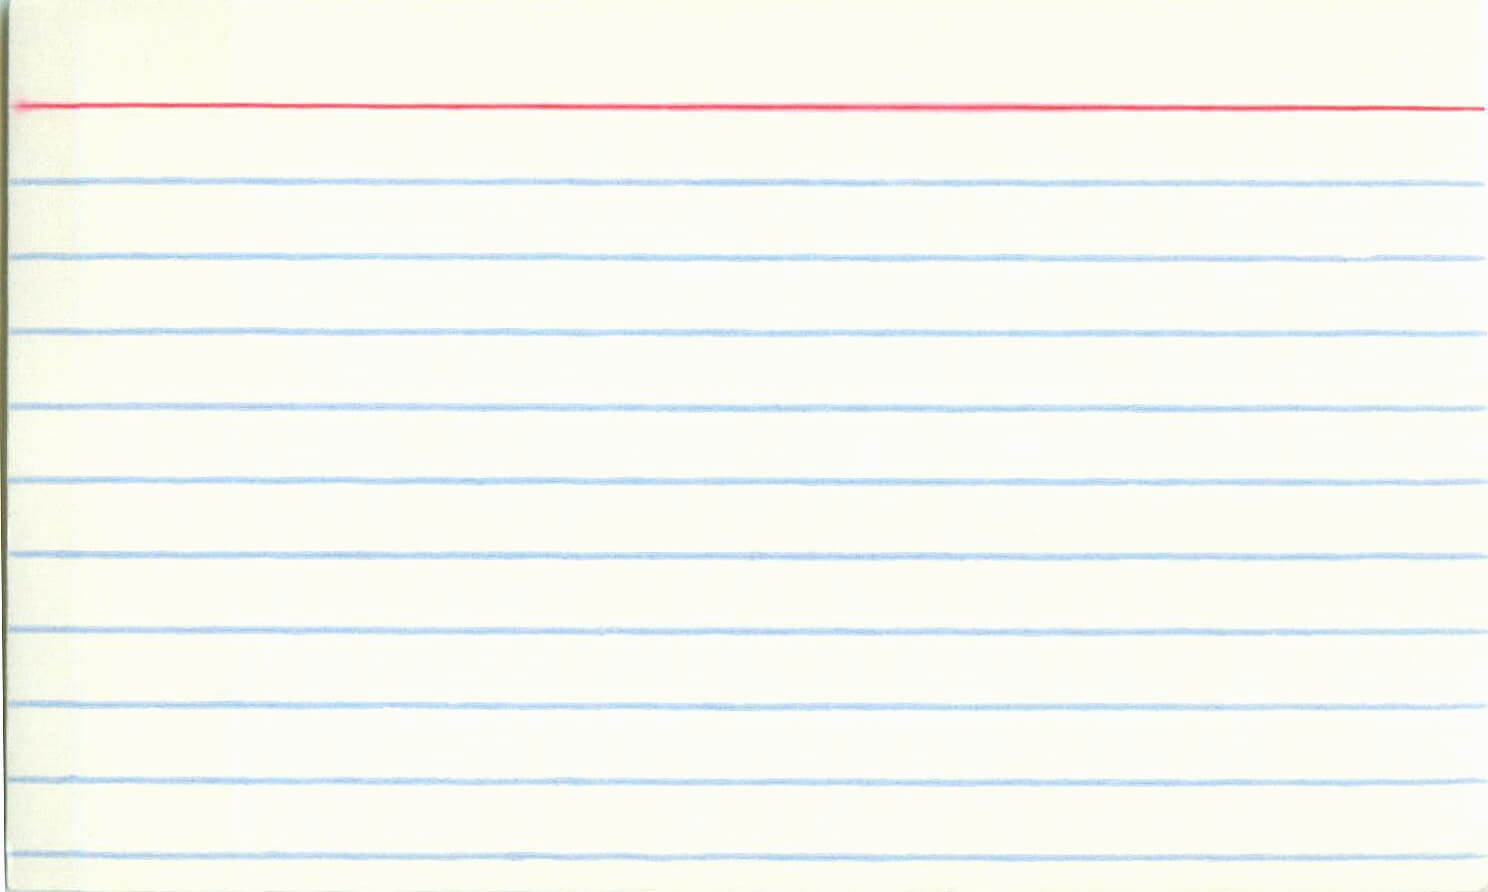 3 X 5 Index Card Template 8 Things You Need To Know About In 5 By 8 Index Card Template